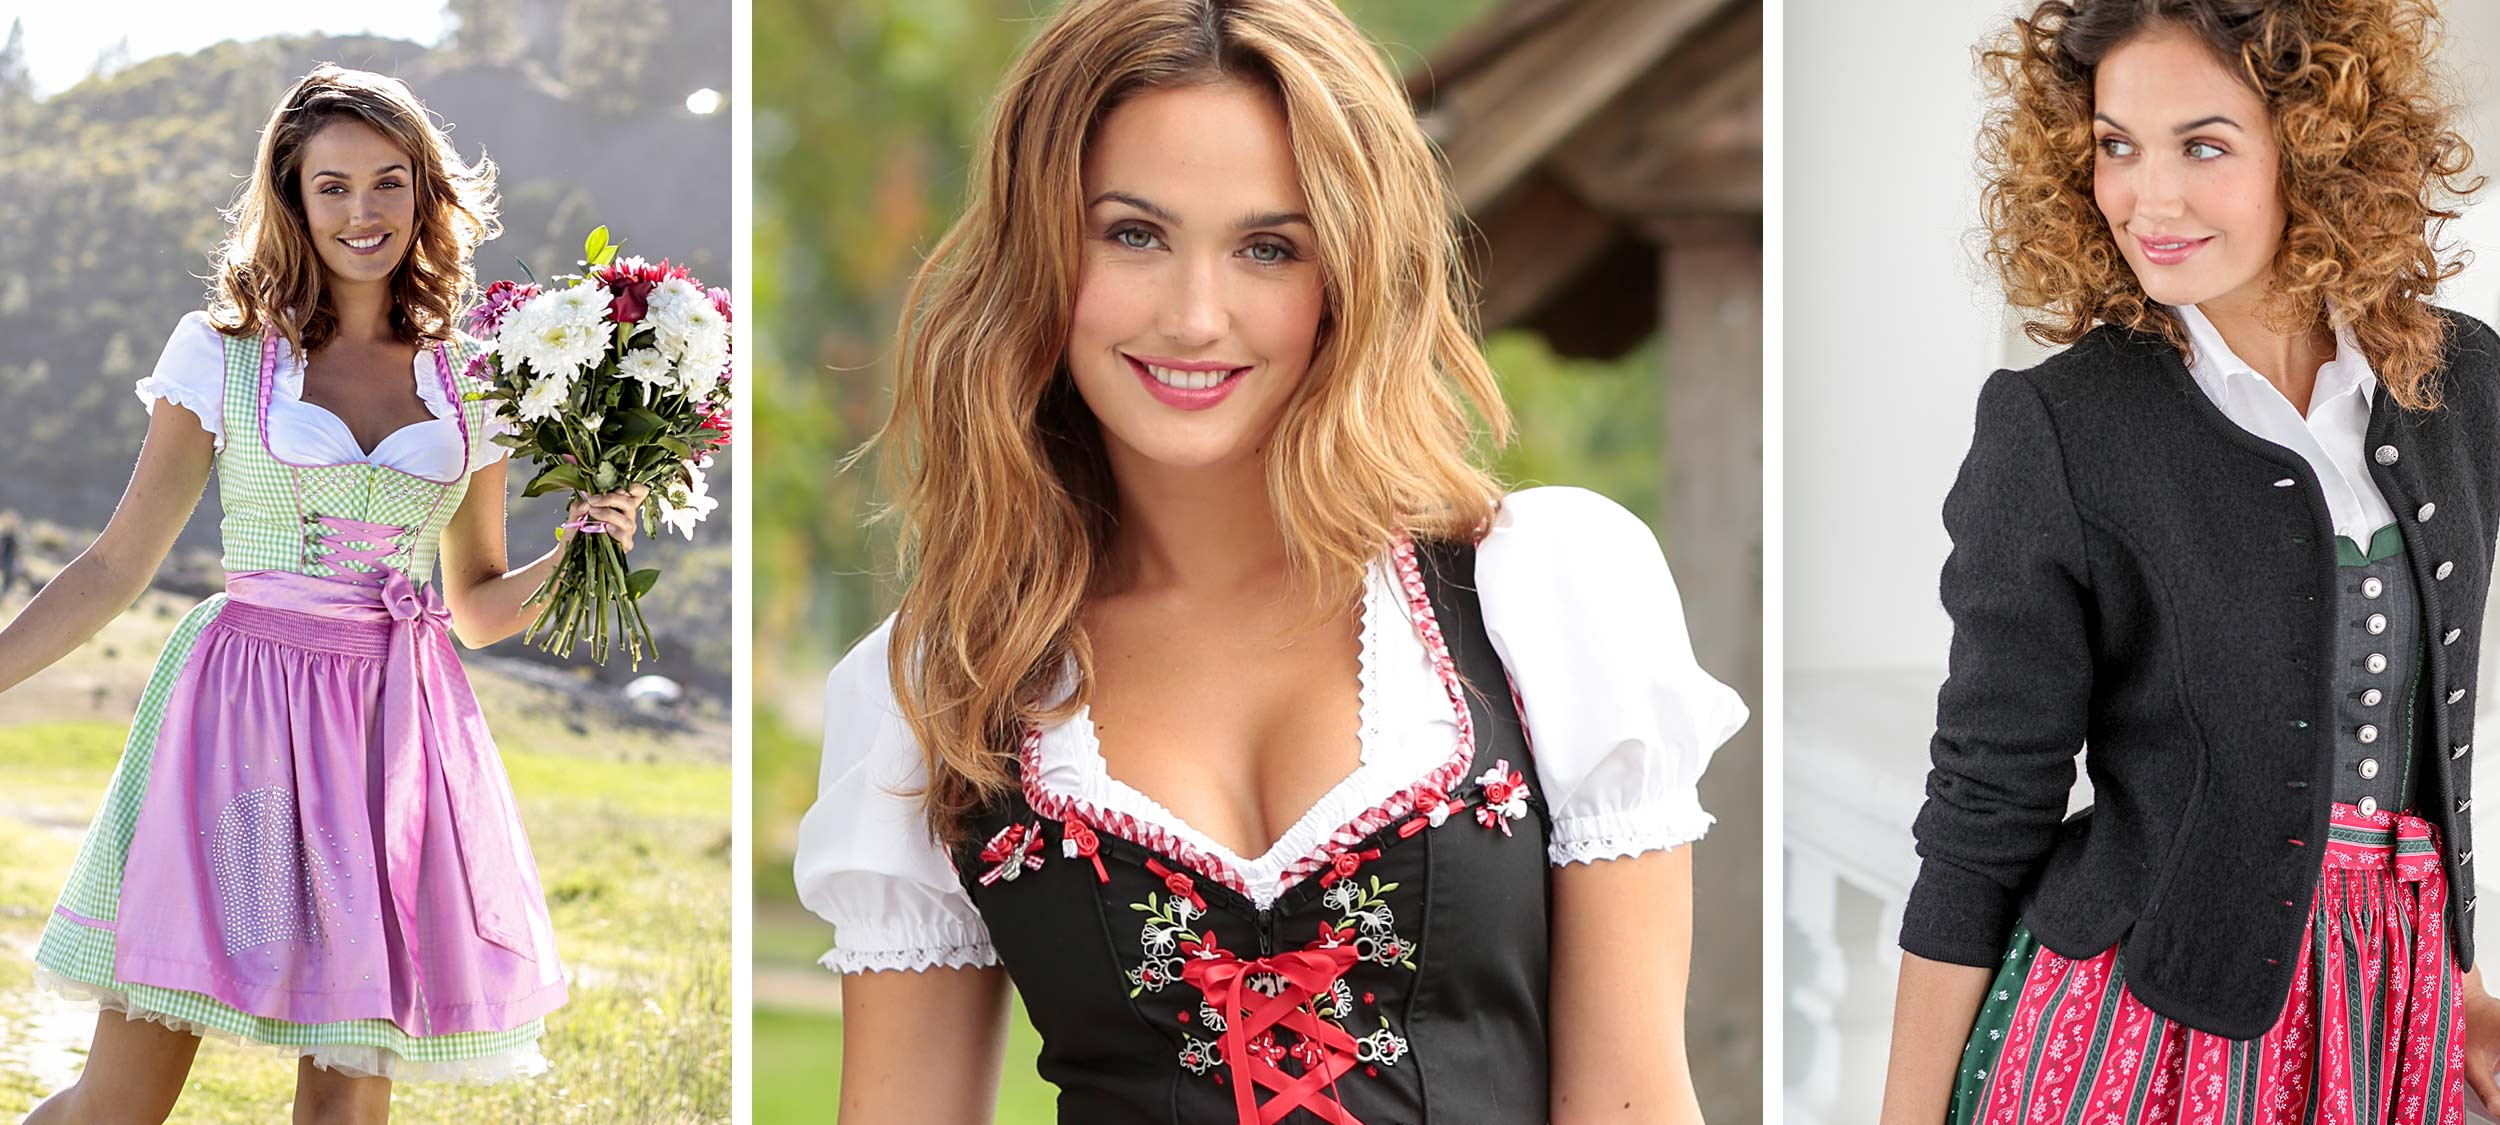 Dirndl richtig tragen: Do's and dont's